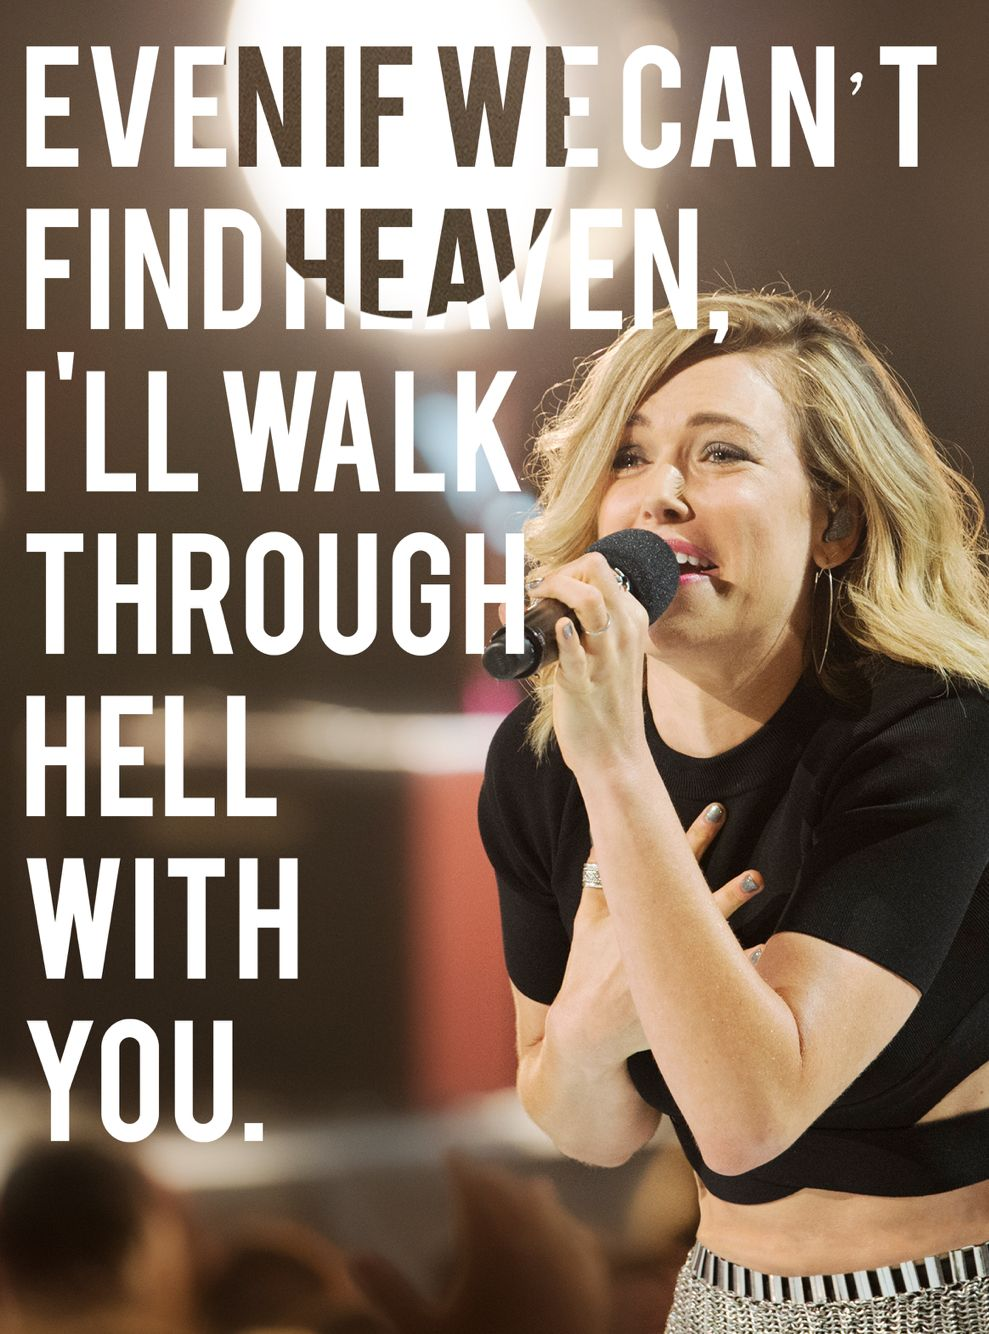 Rachel platten's quotes  Stand by you  'Even if we can't